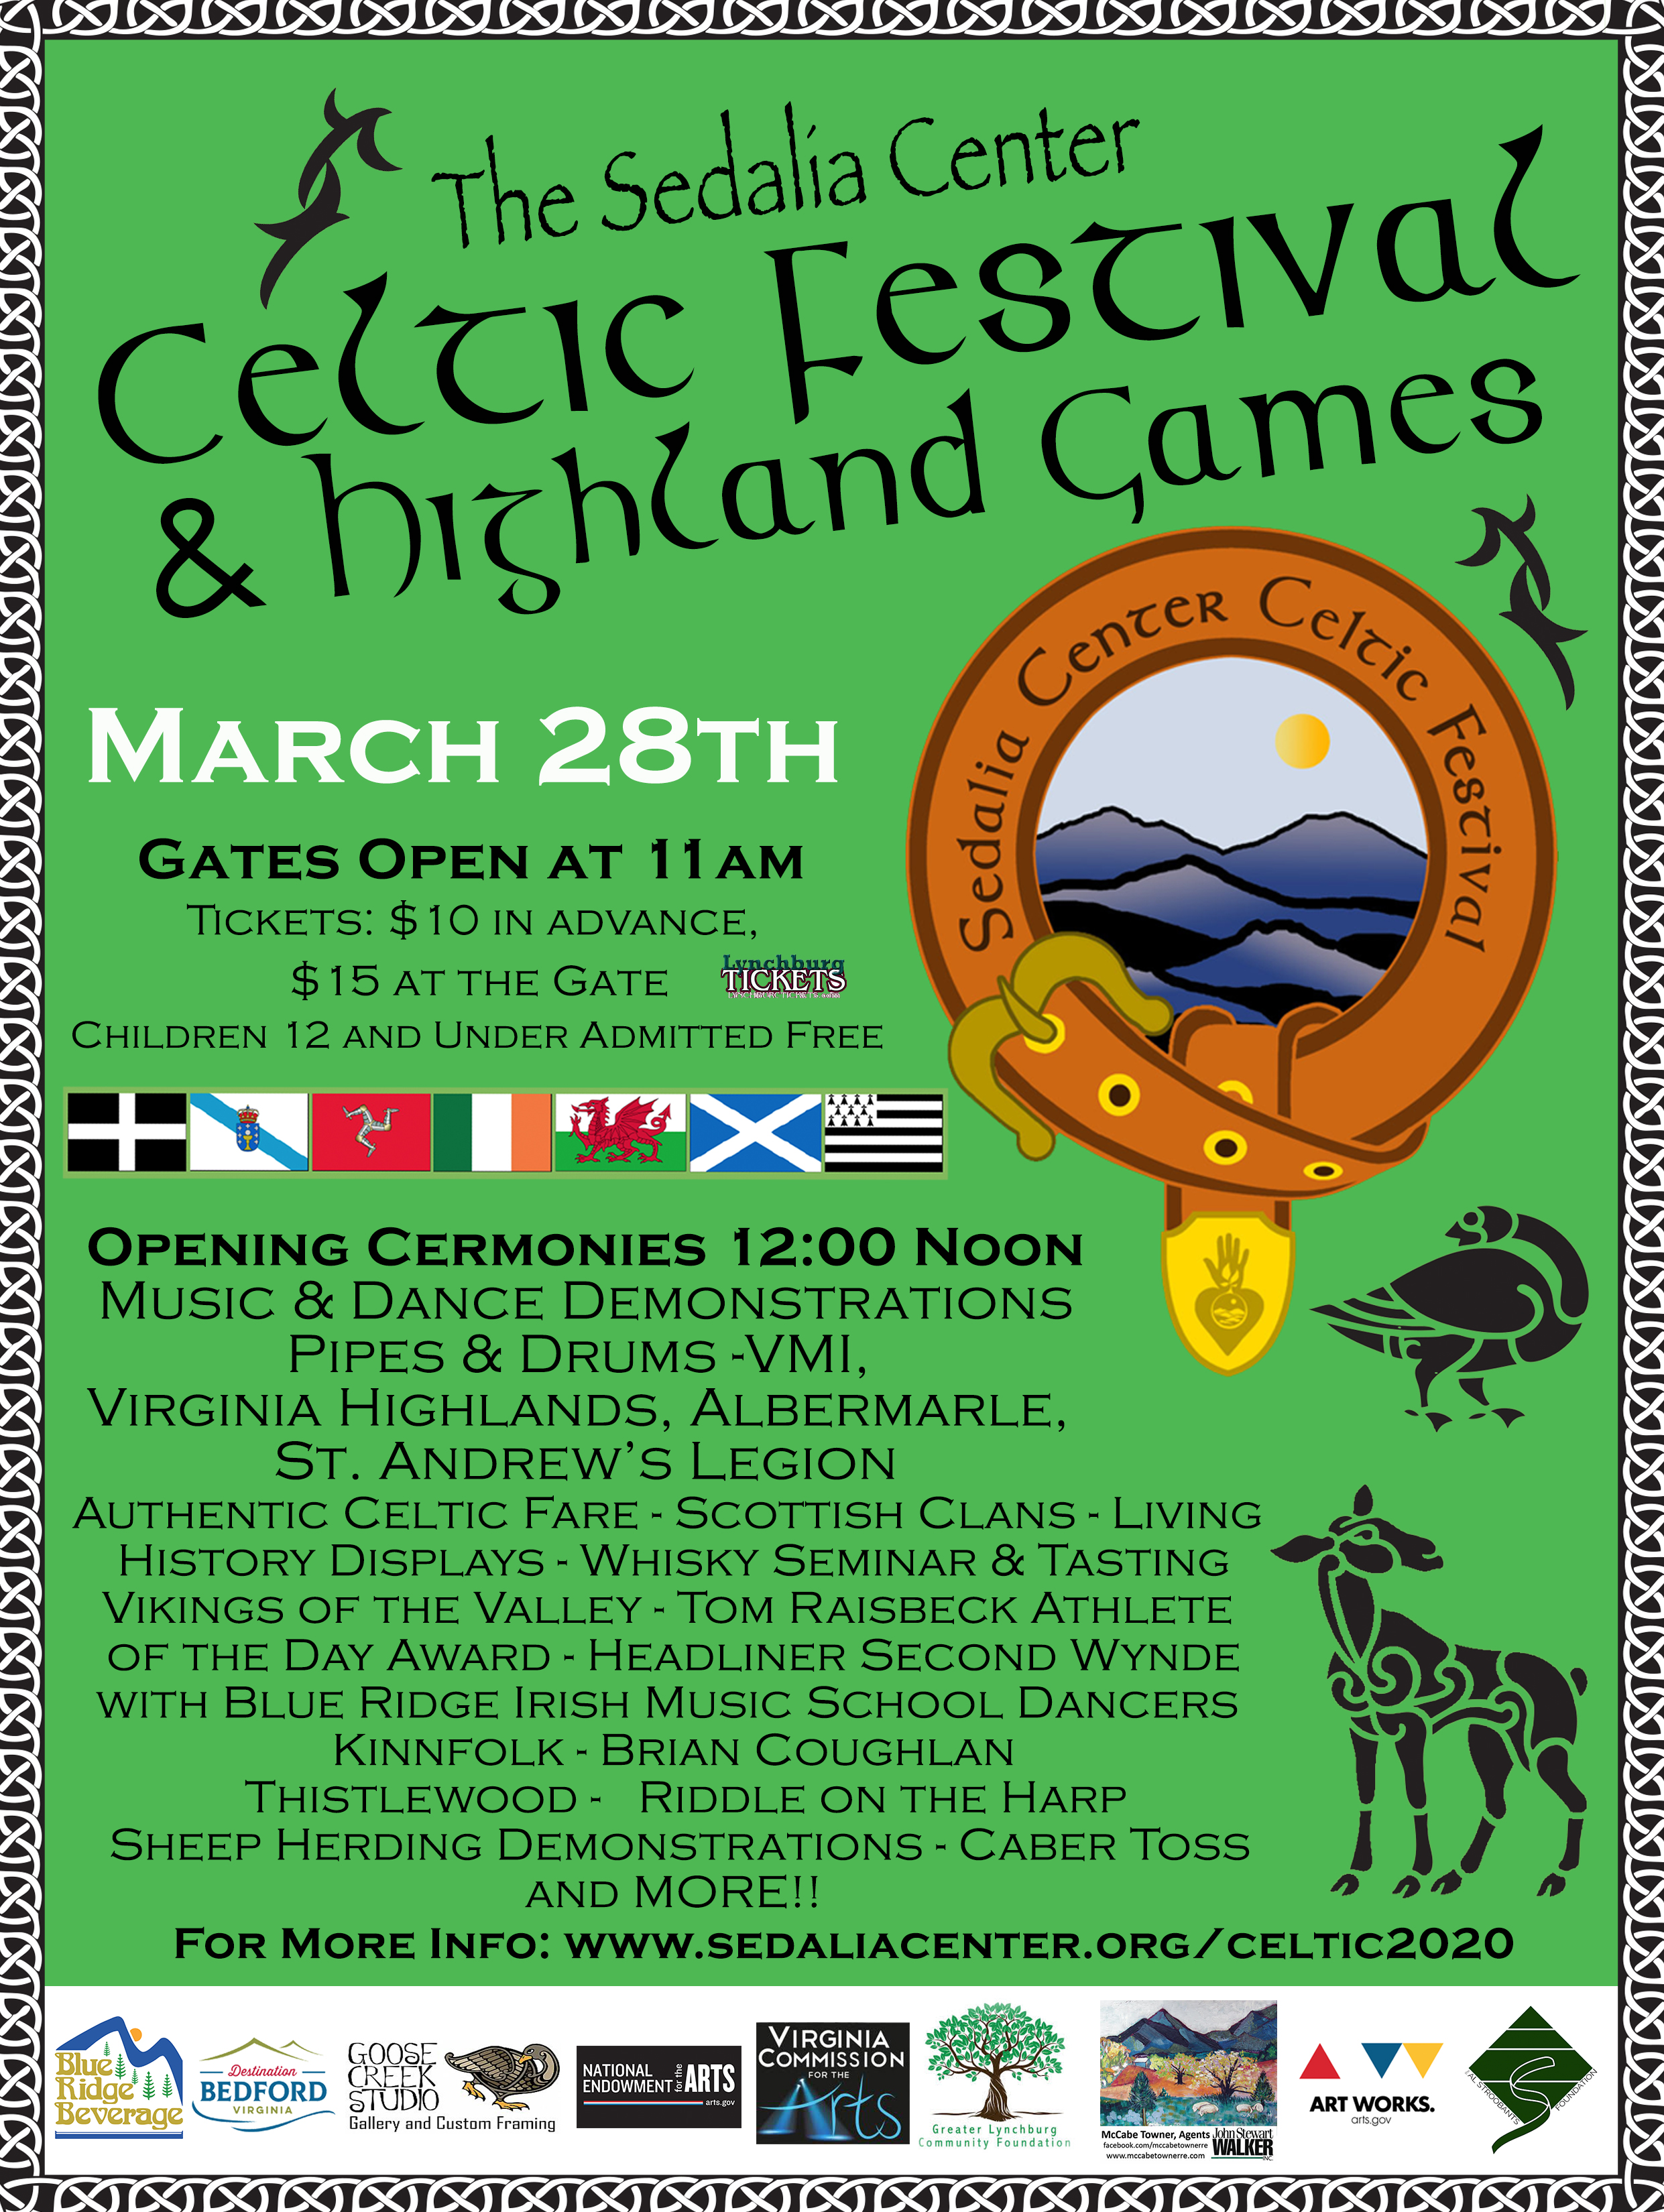 2020 Celtic Festival & Highland Games